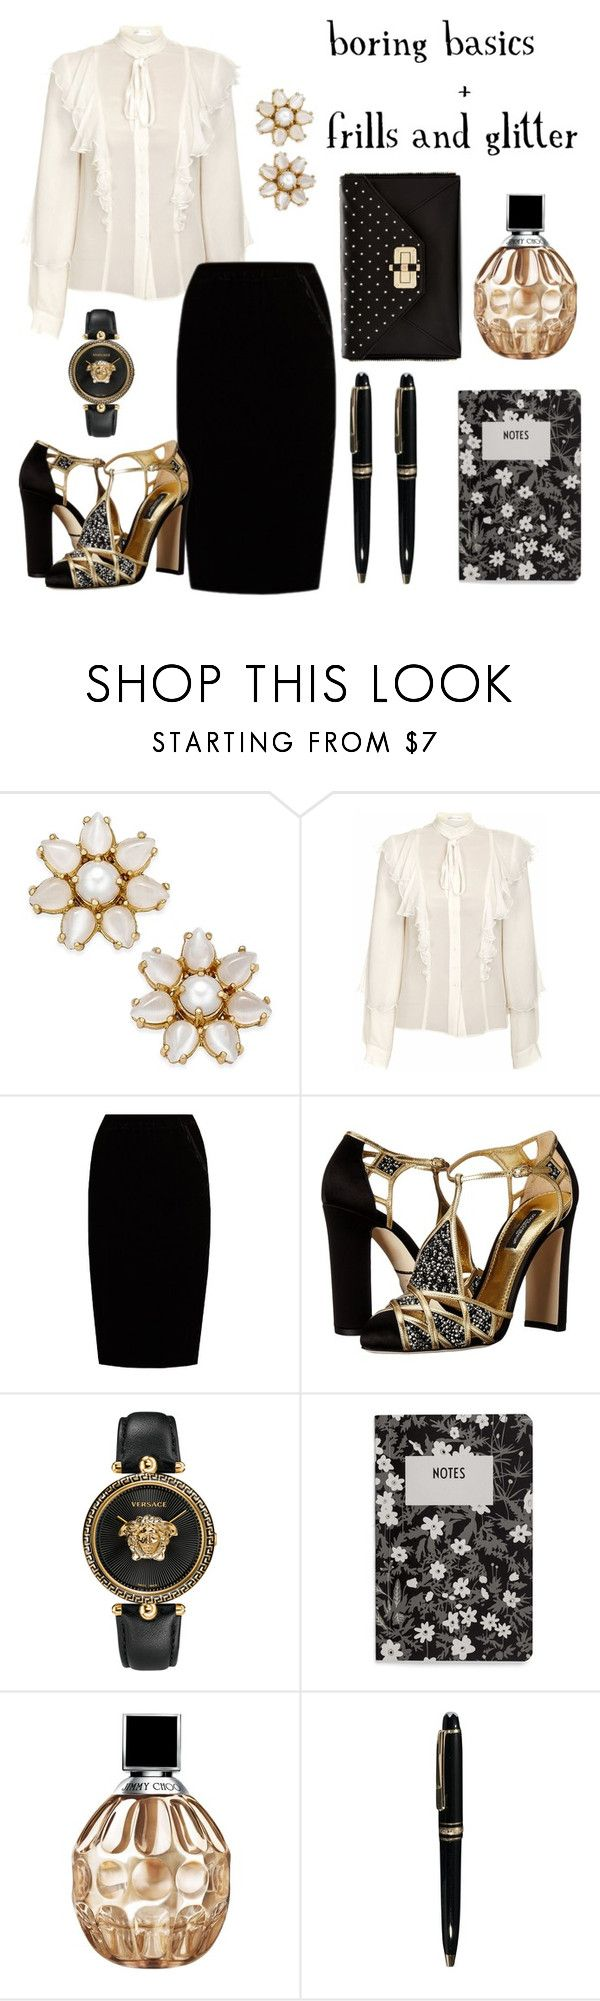 """""""Boring basics 1"""" by tharusmiles ❤ liked on Polyvore featuring Kate Spade, JIRI KALFAR, Jupe By Jackie, Dolce&Gabbana, Versace, Design Letters, Jimmy Choo, Mont Blanc and Diane Von Furstenberg"""